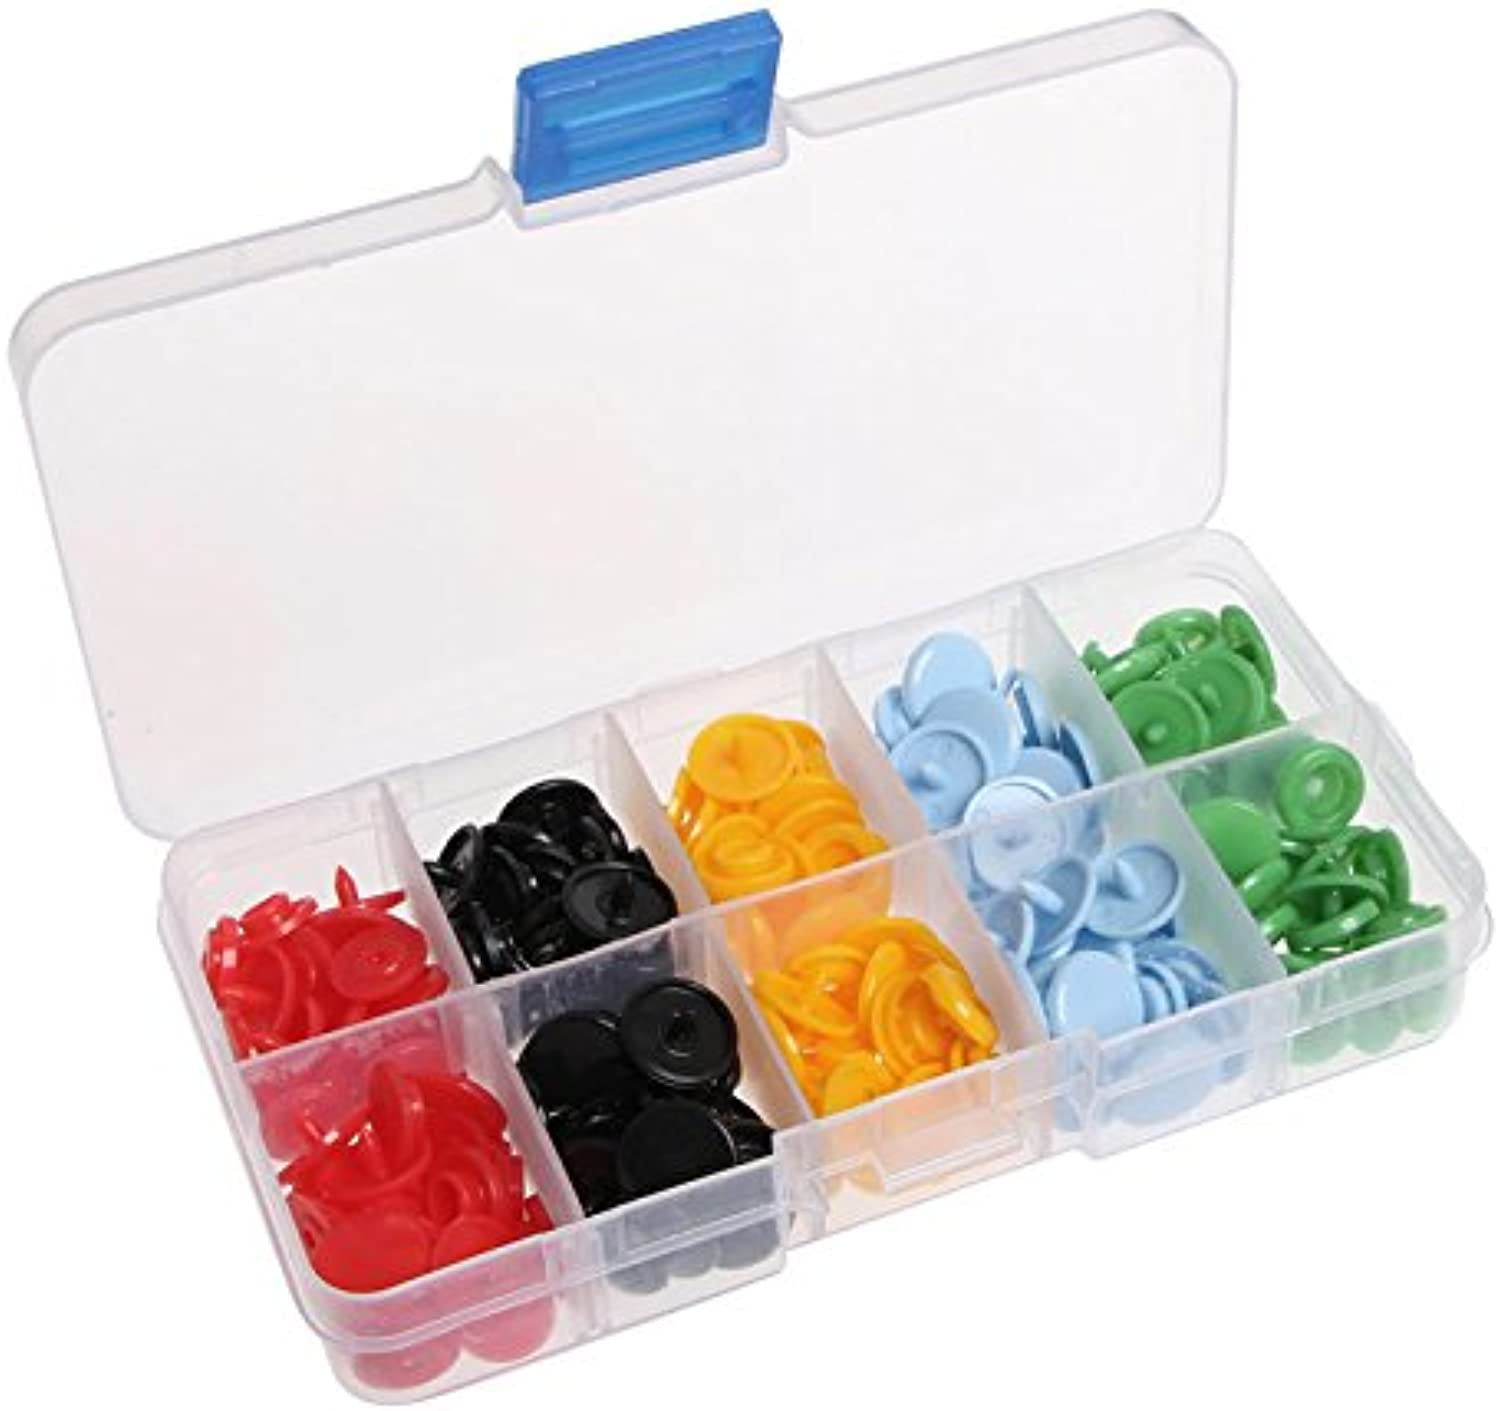 50Pcs Set Snaps Fasteners Press Studs Dummy Clips 12MM Mixed Colour Resin Plastic